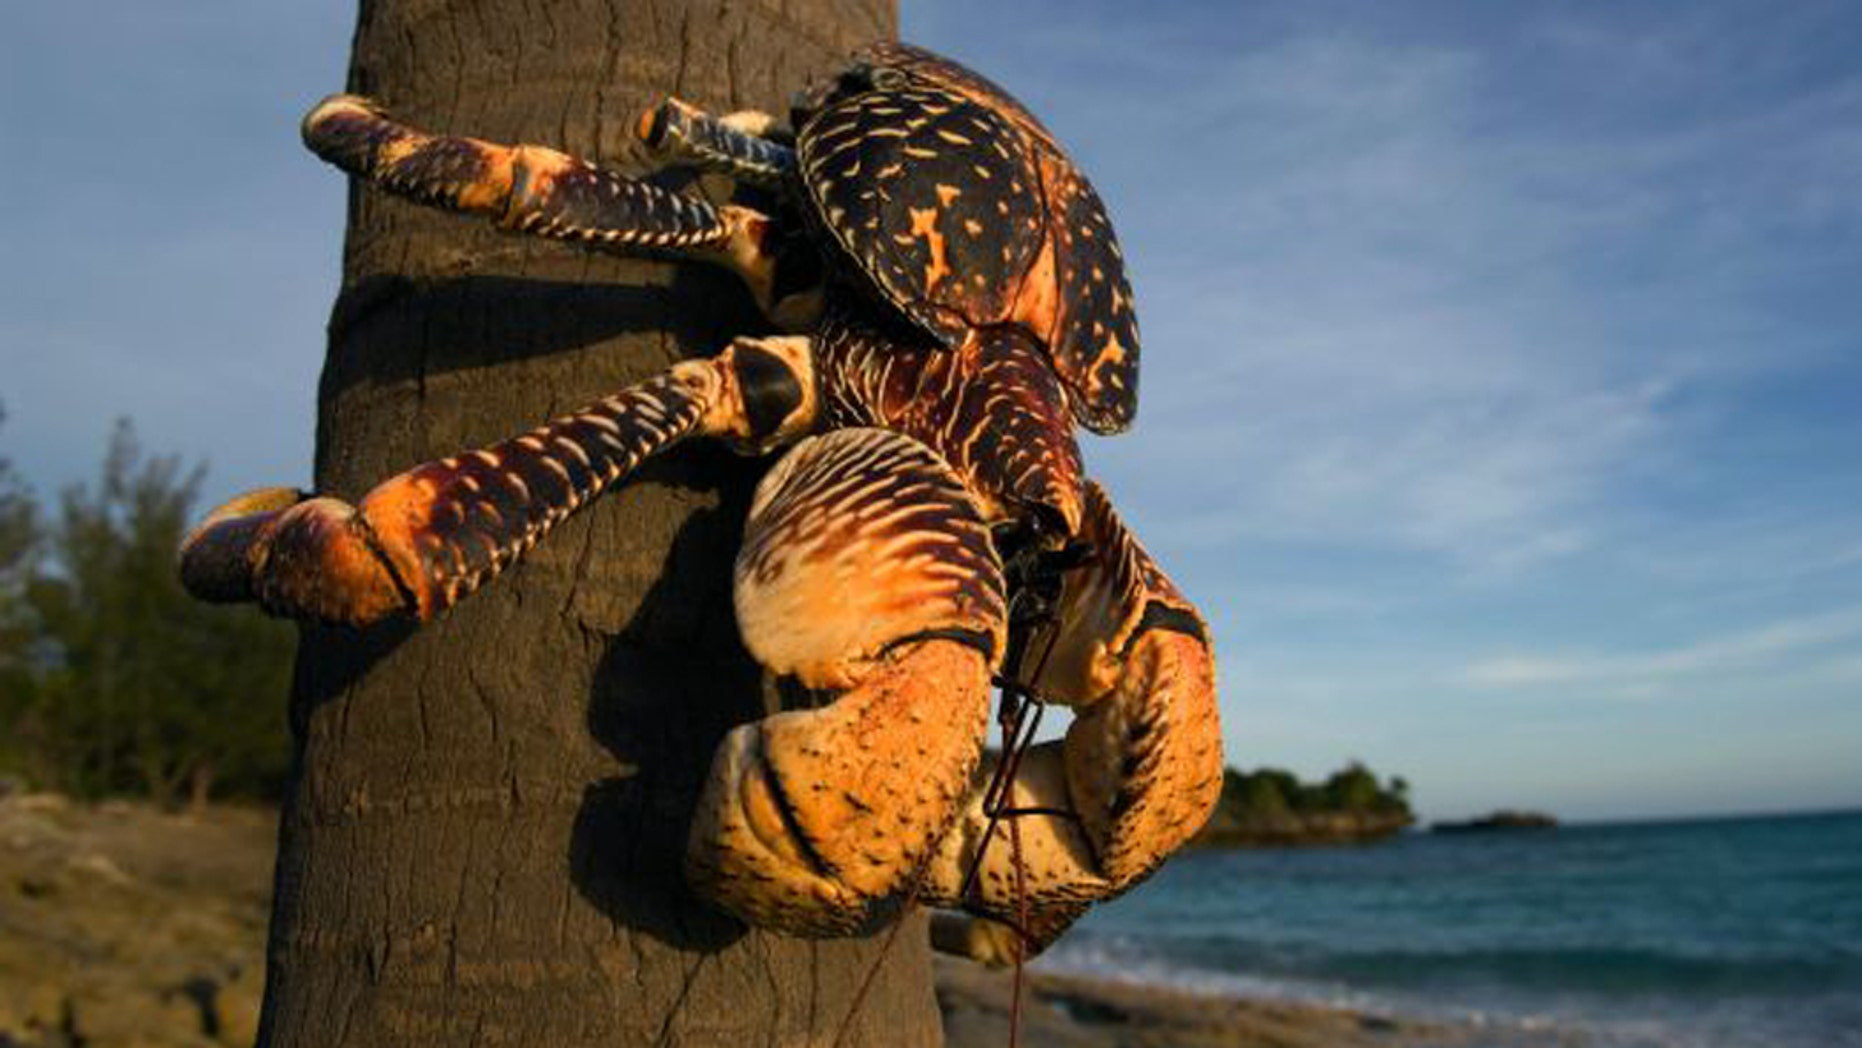 The giant coconut crab (Birgus latro) is the biggest terrestrial crab in the world. (Credit: The Africa Image Library/Alamy)